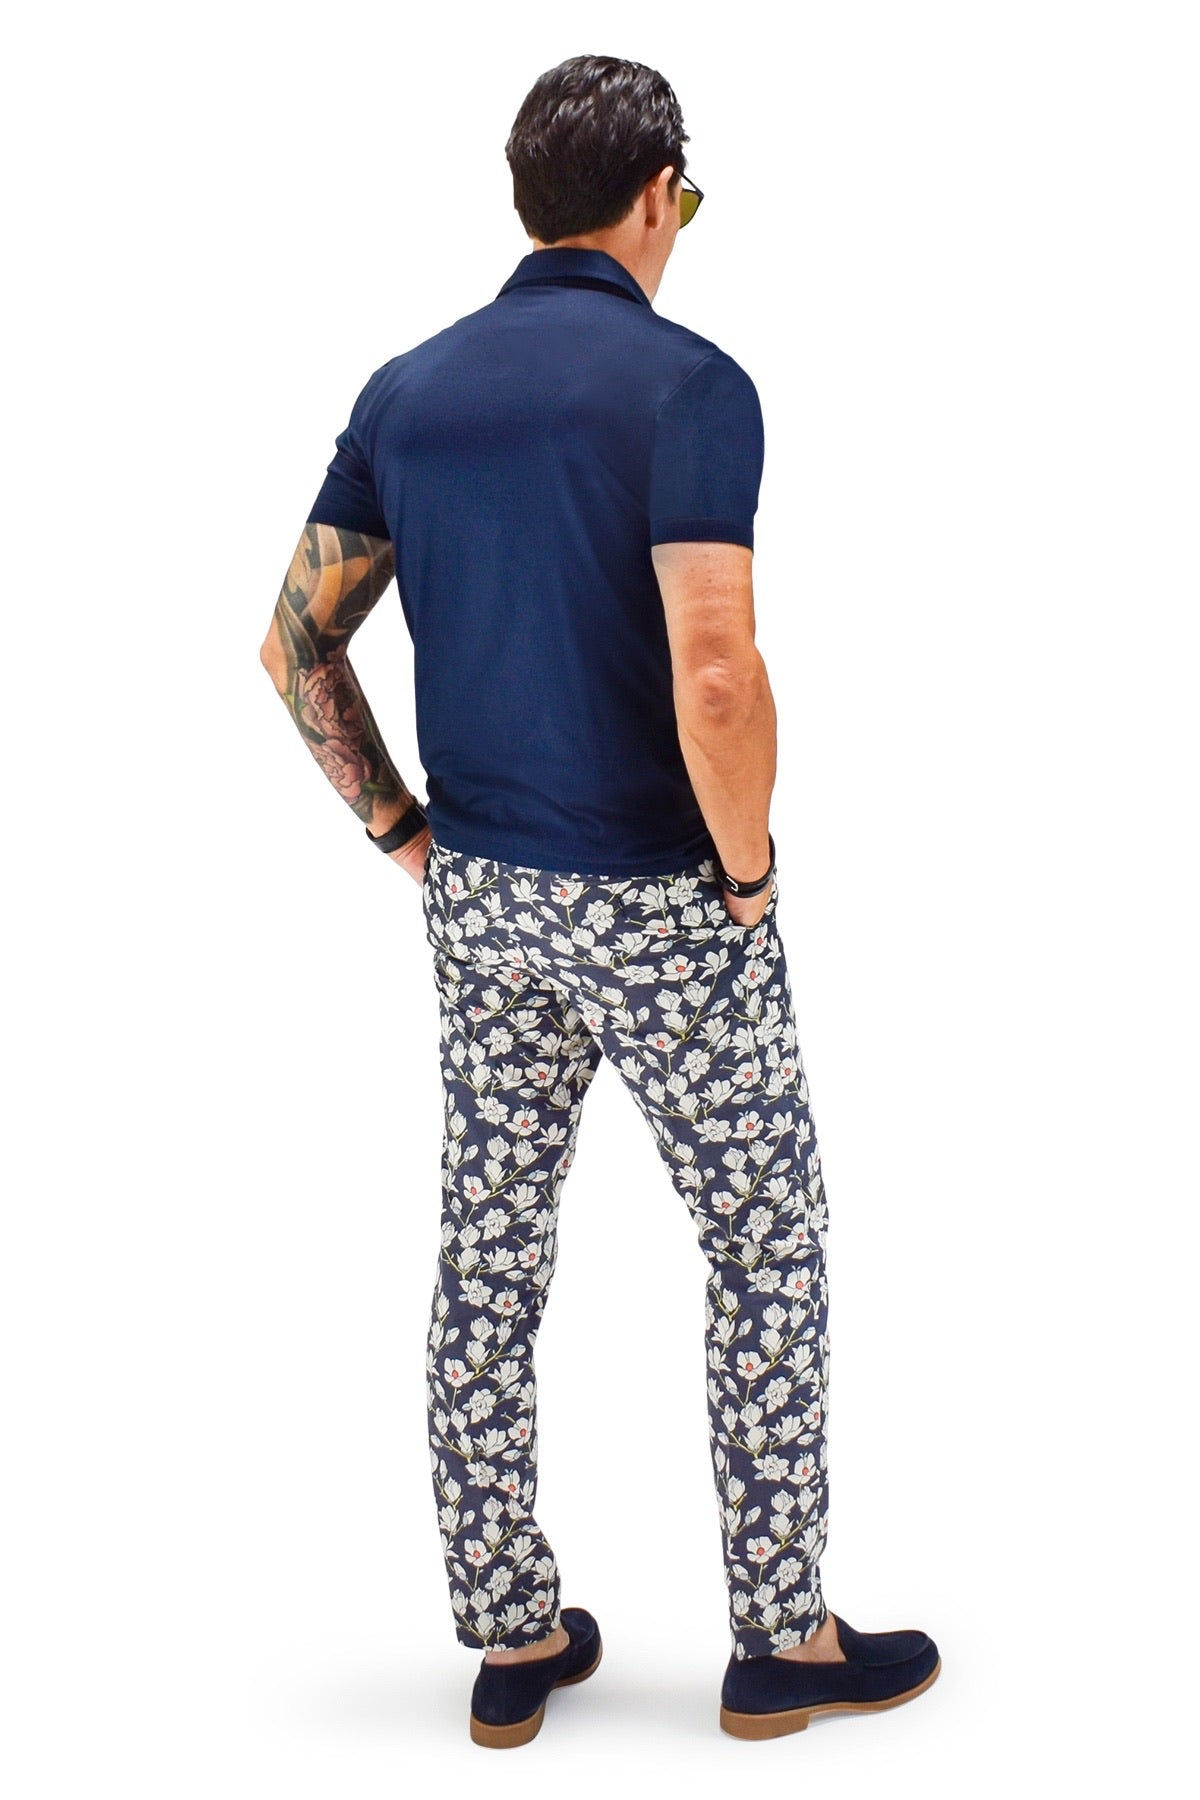 David August Slim Fit Tapered Navy With White Floral Pattern Cotton Trousers - Cut-to-Order